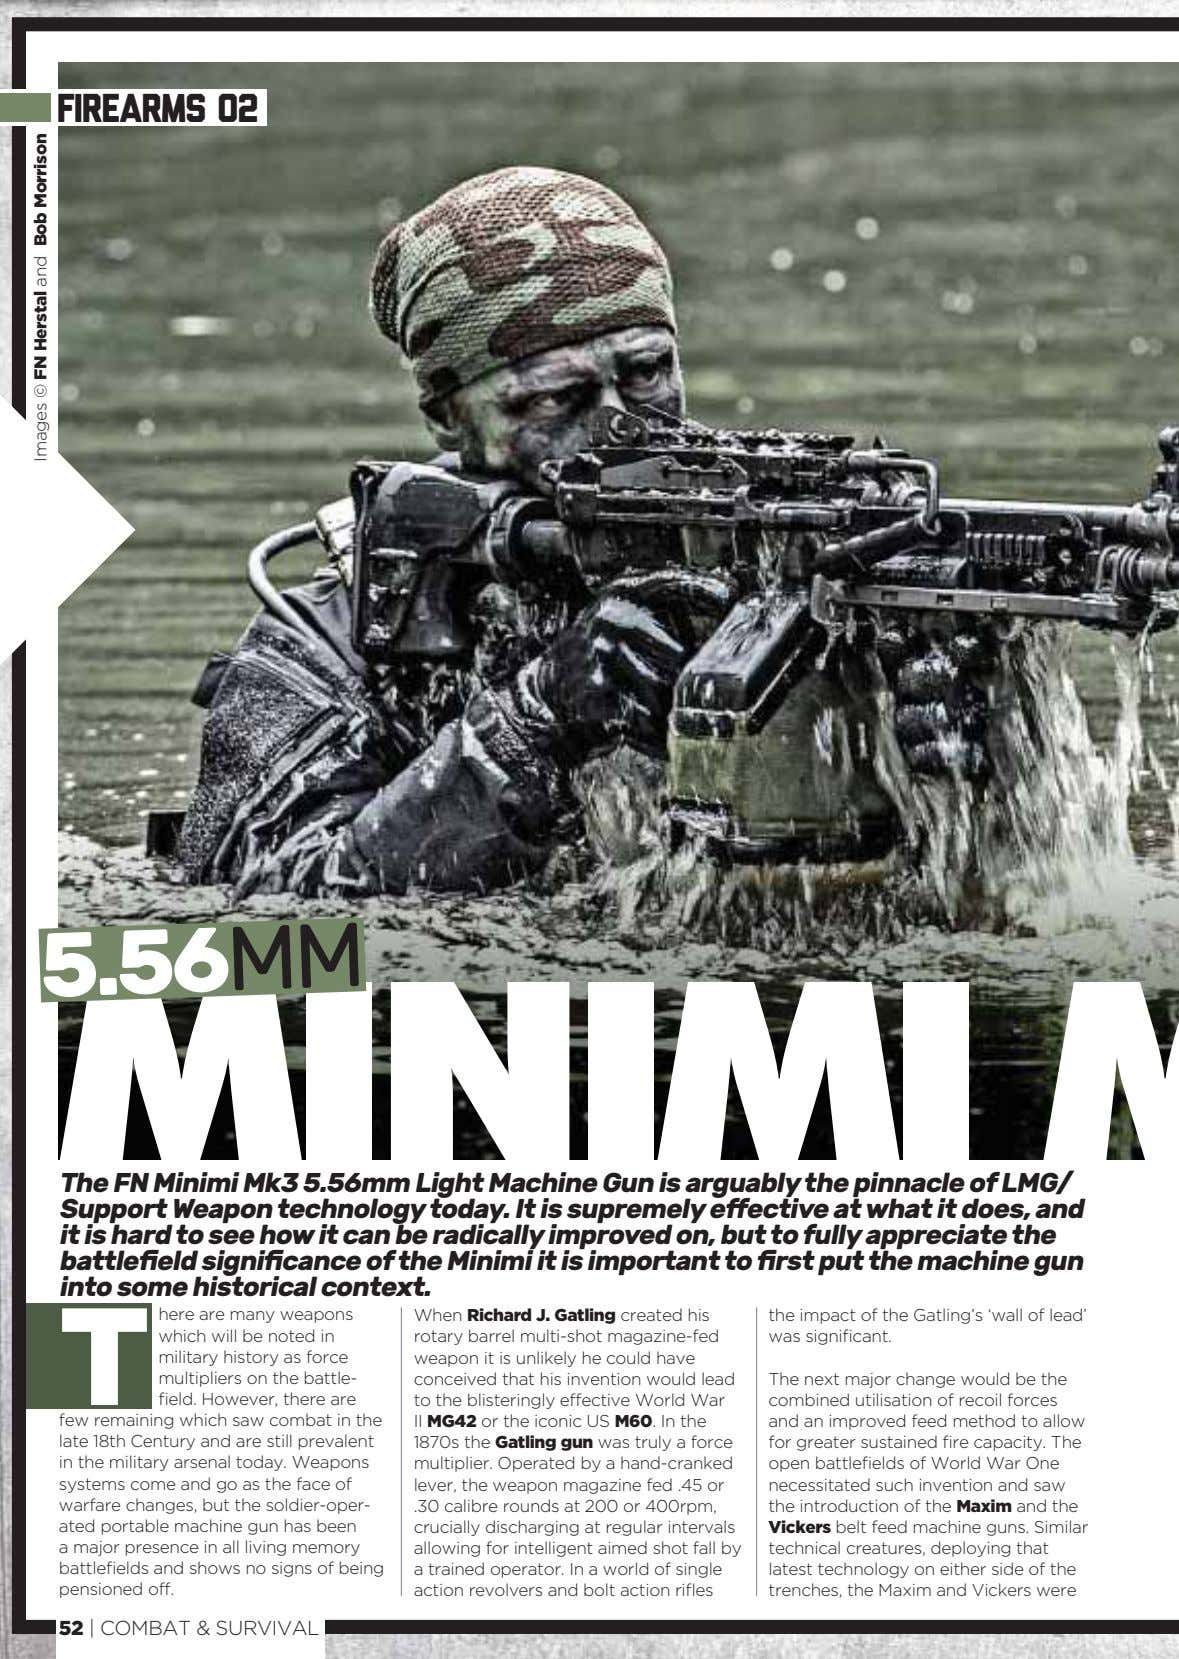 firearms 02 MINIMI M The FN Minimi Mk3 5.56mm Light Machine Gun is arguably the